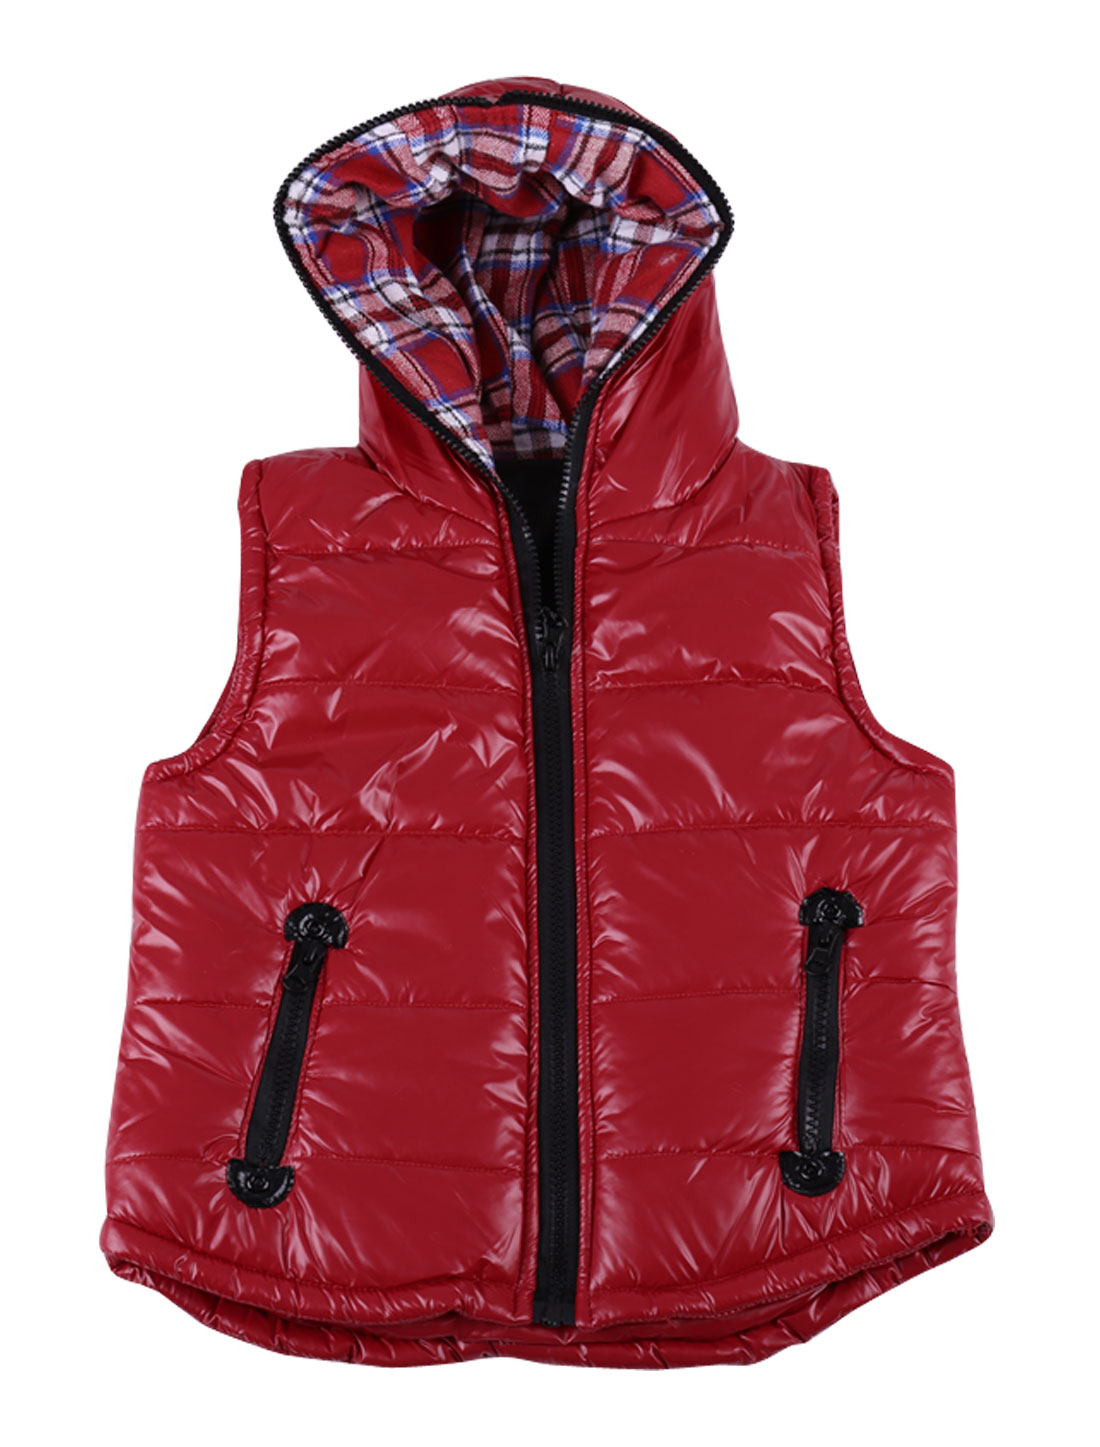 Girls Zipper Embellished Pockets Spring Autumn Vest Red 12